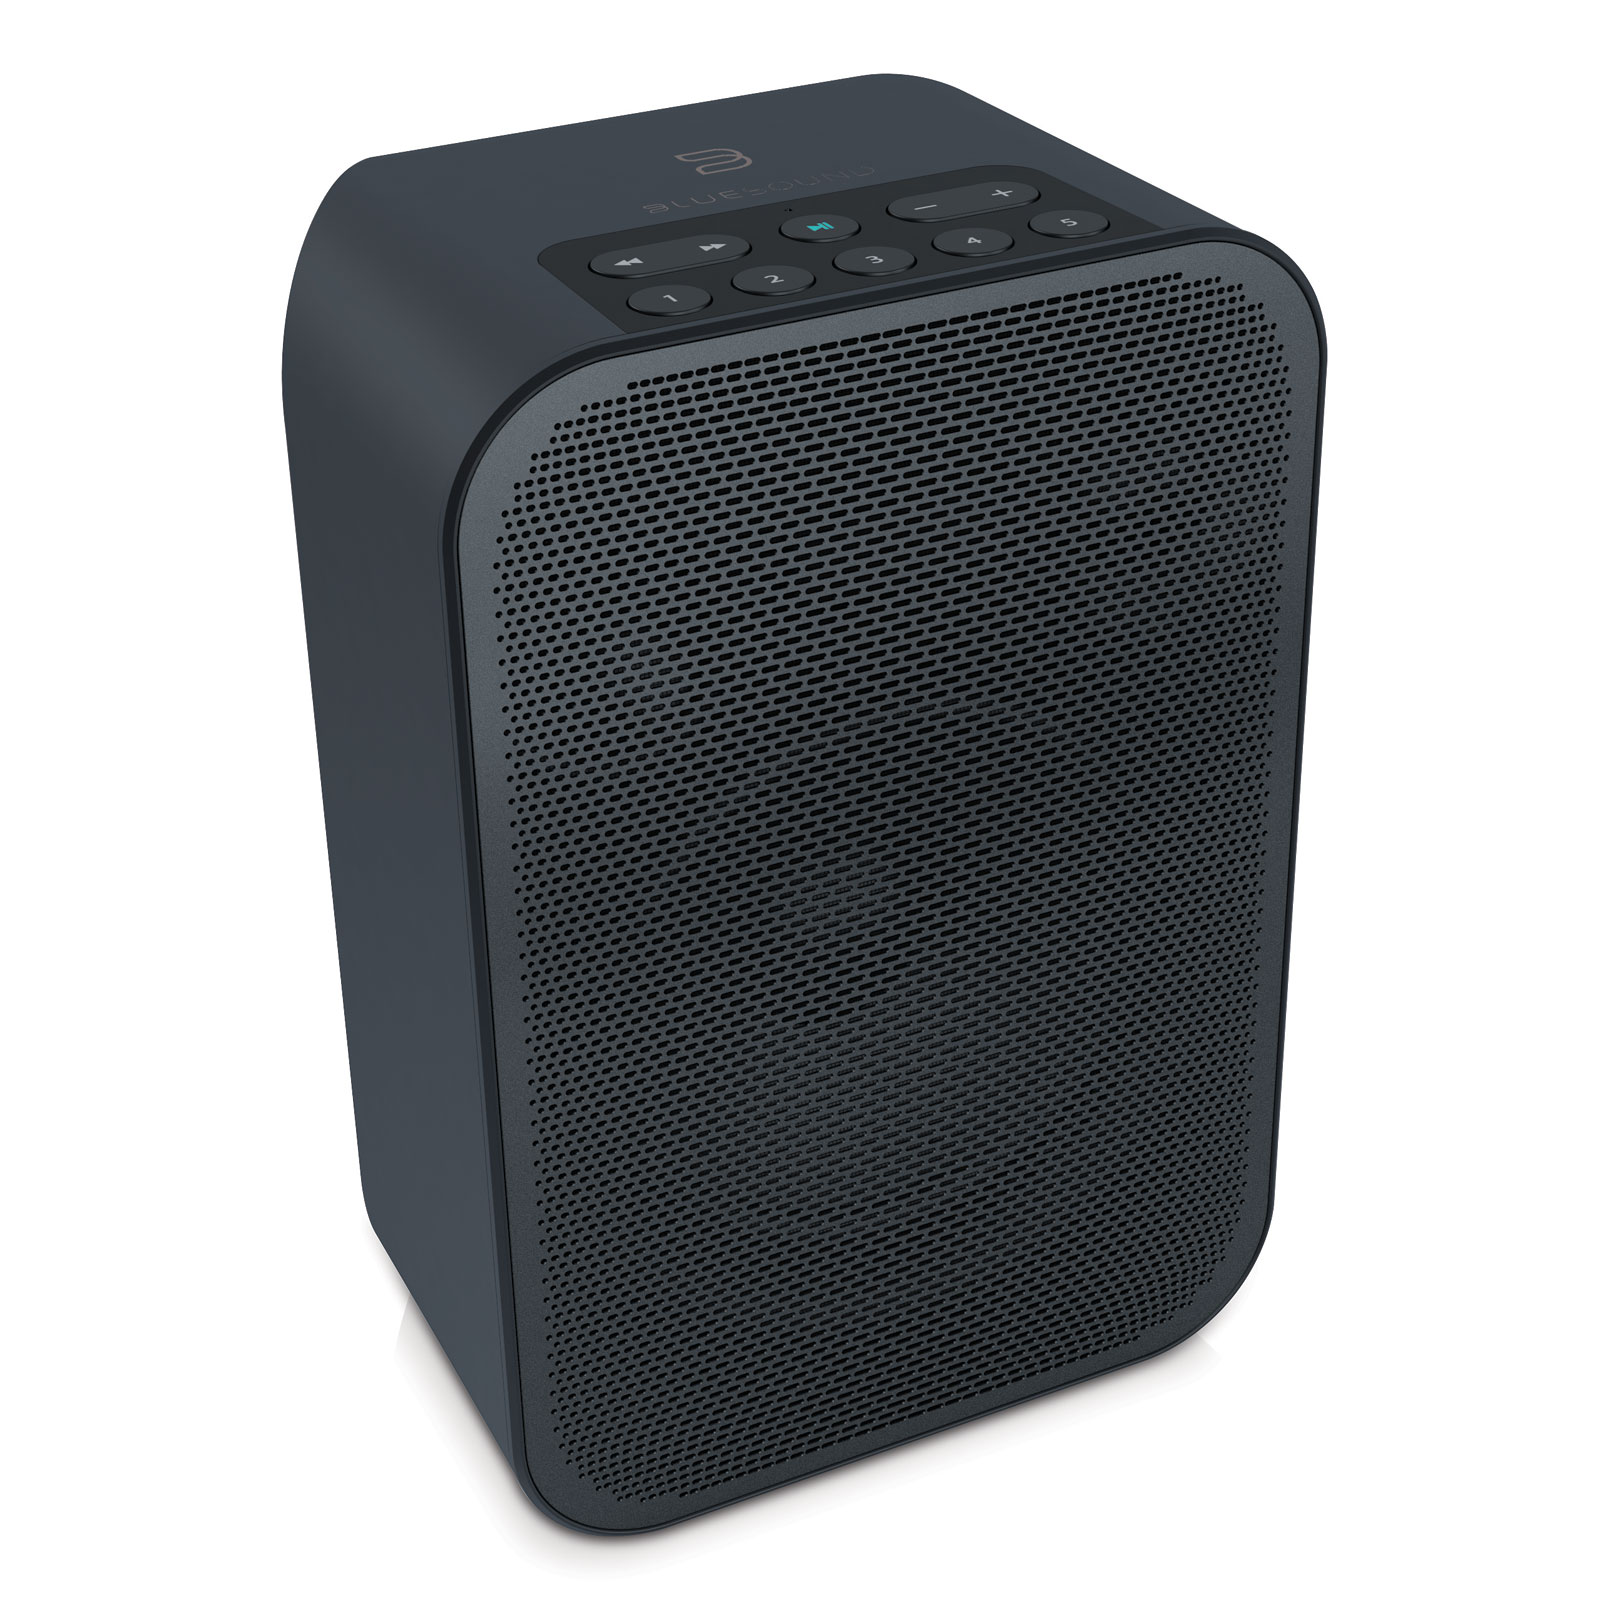 Bluesound pulse flex noir dock enceinte bluetooth bluesound sur ldlc - Systeme audio bluetooth ...